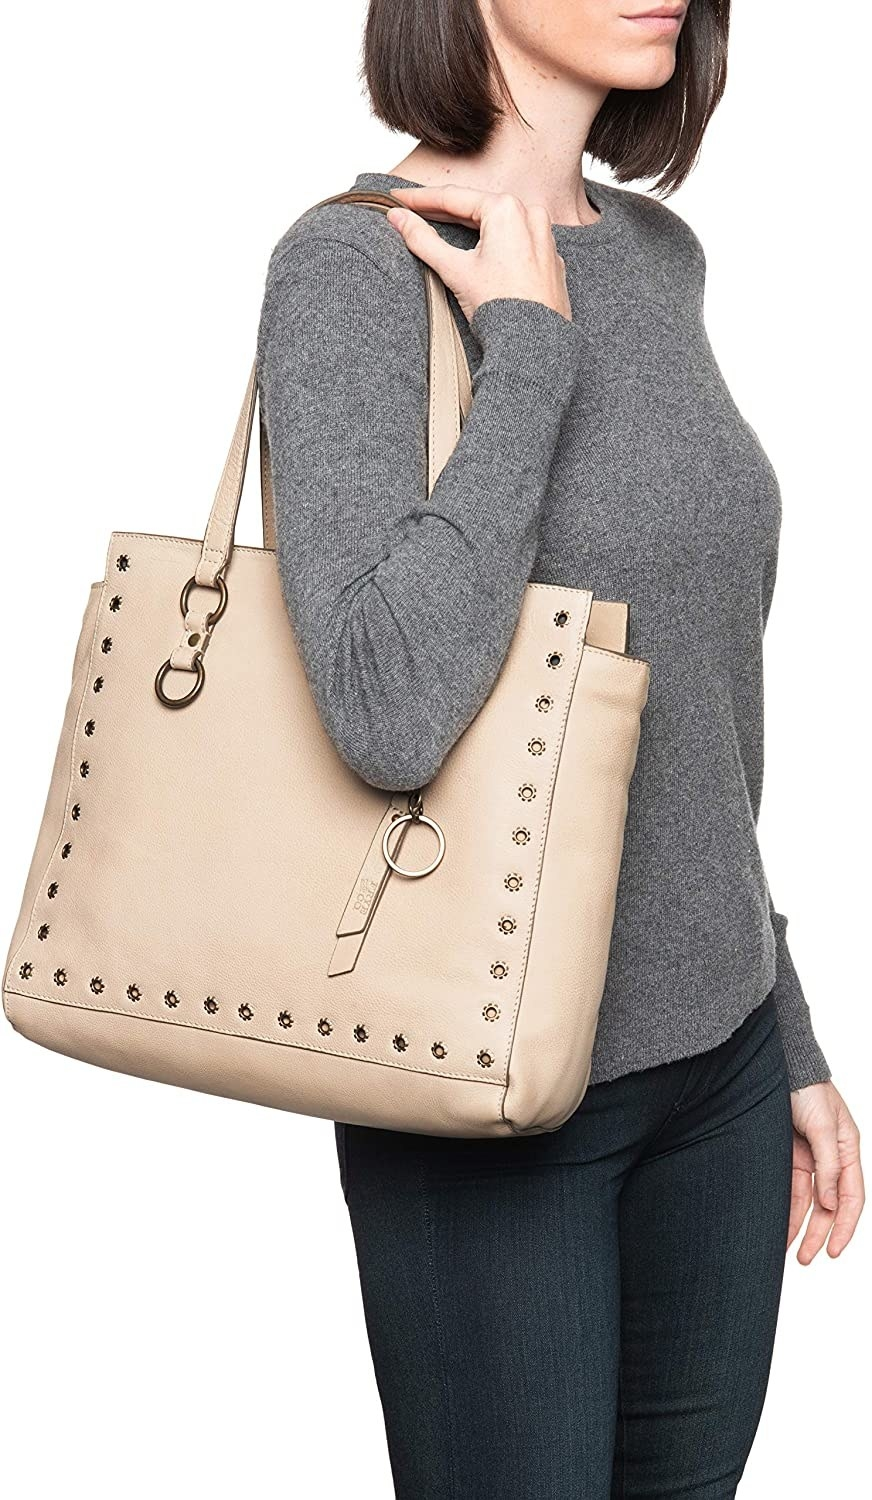 Model wearing the purse over their shoulder showing the eyelet detailing around the outside and key rings on the side